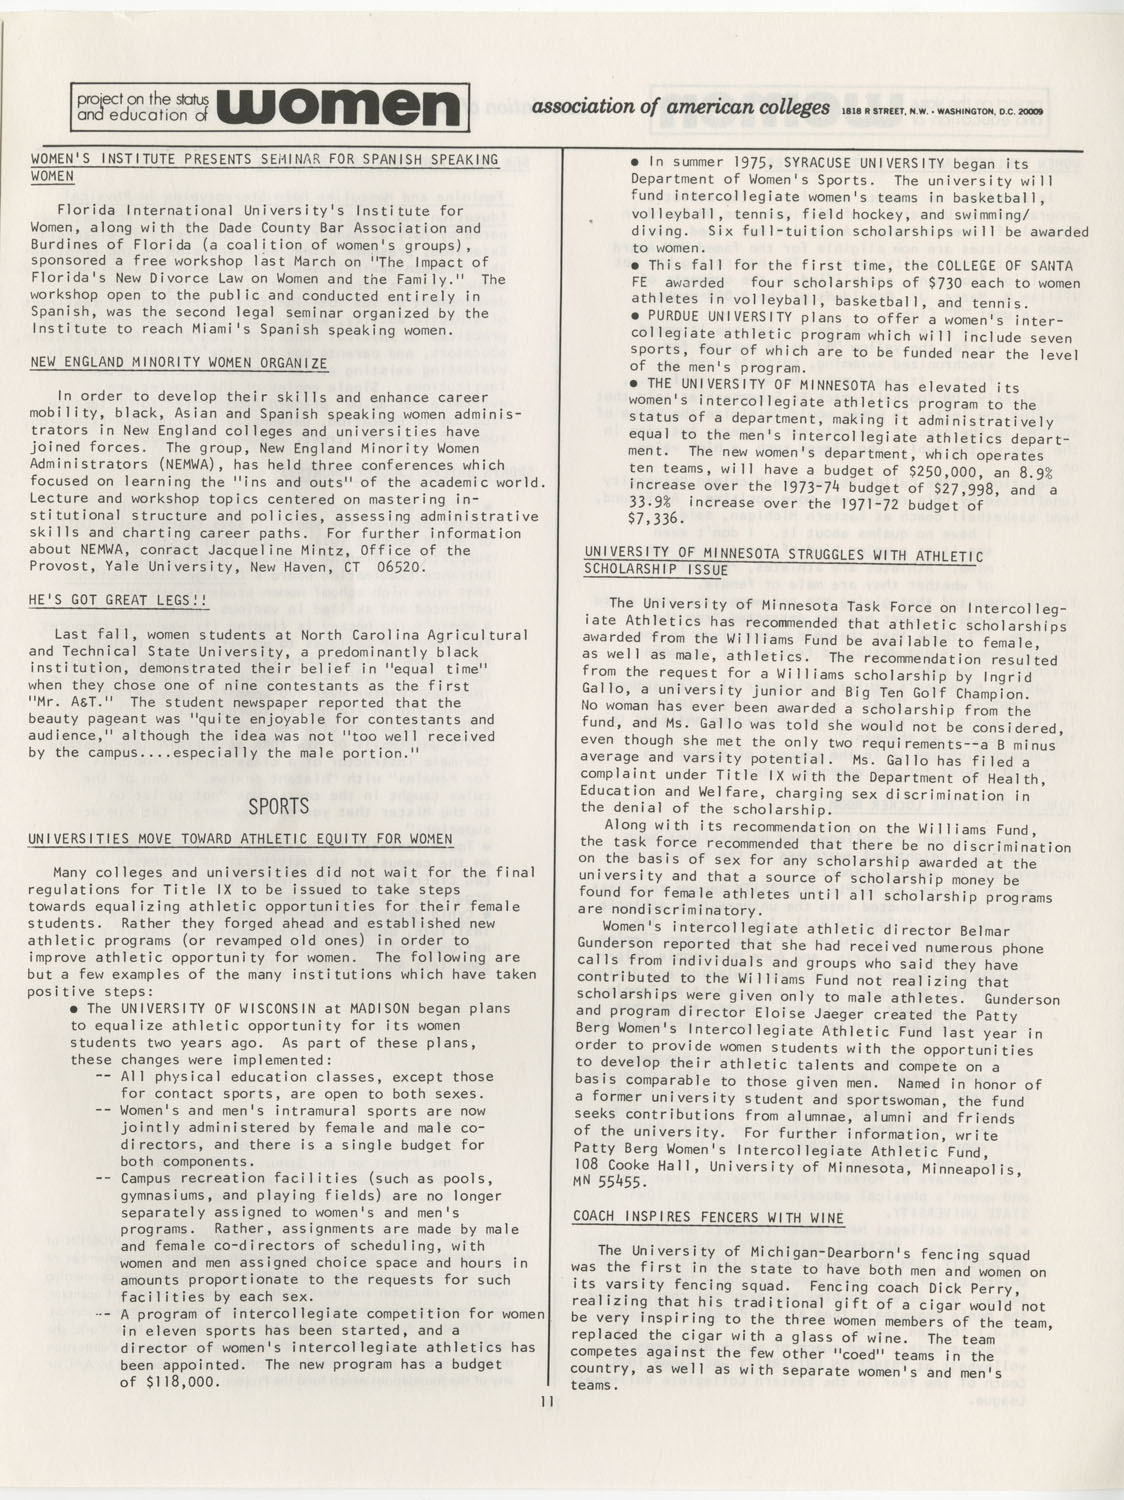 On Campus With Women, Association of American Colleges, November 1975, Page 11